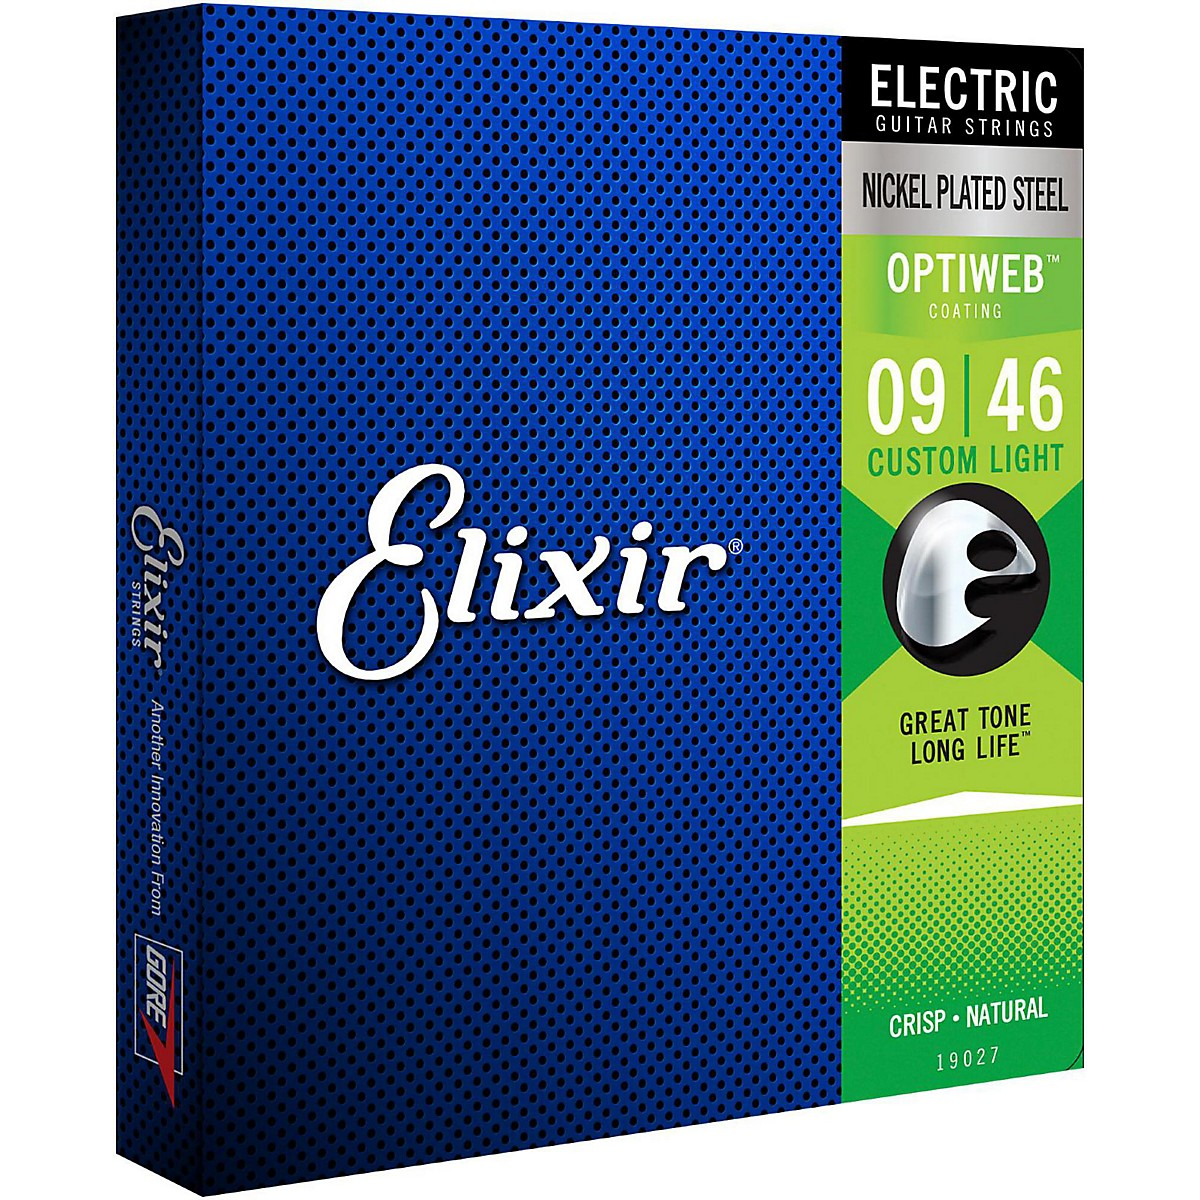 Elixir Electric Guitar Strings with OPTIWEB Coating, Custom Light (.009-.046)